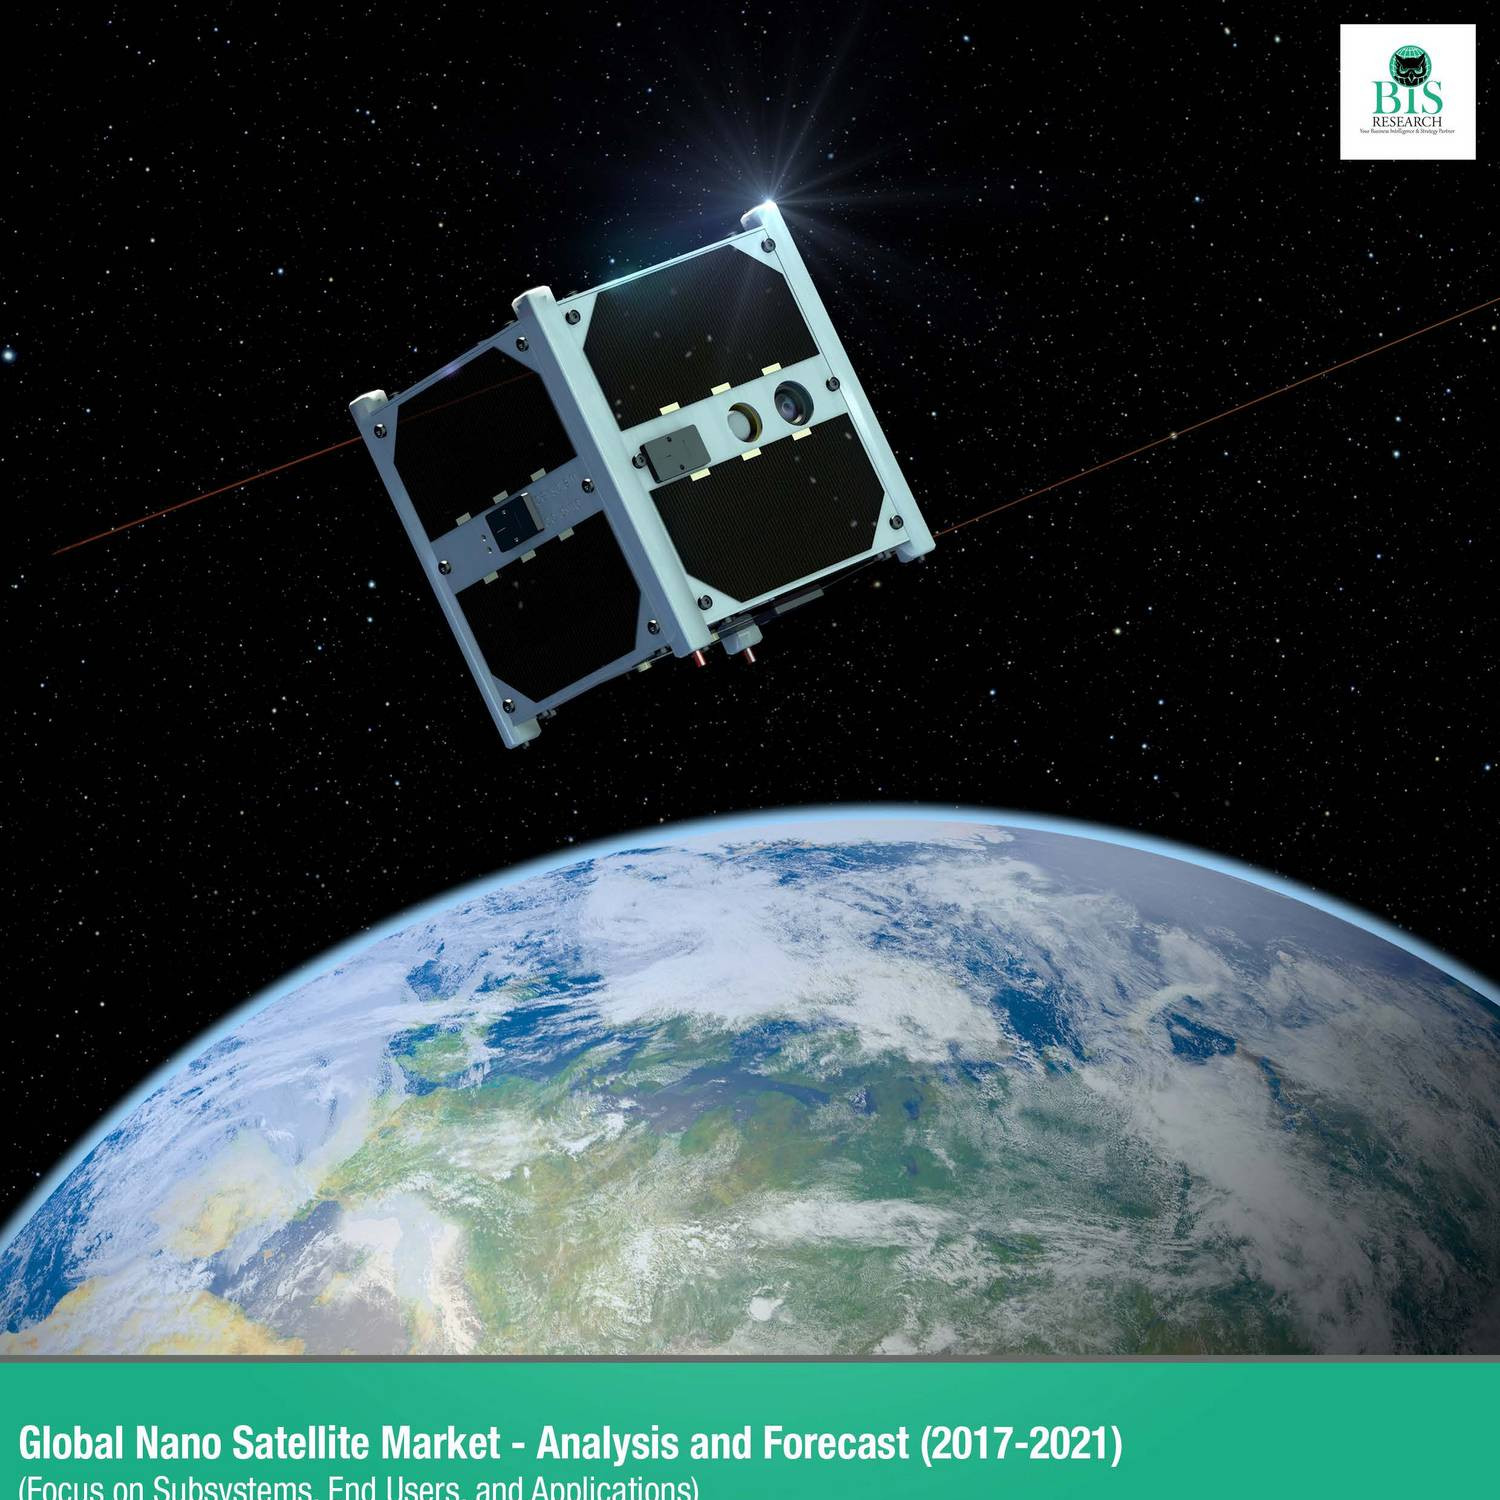 global nano and microsatellite market Overview the report on the global nano and microsatellite market 2017 gives complete view of the market across the globe in-depth analysis comprising key market players, market forecasts.